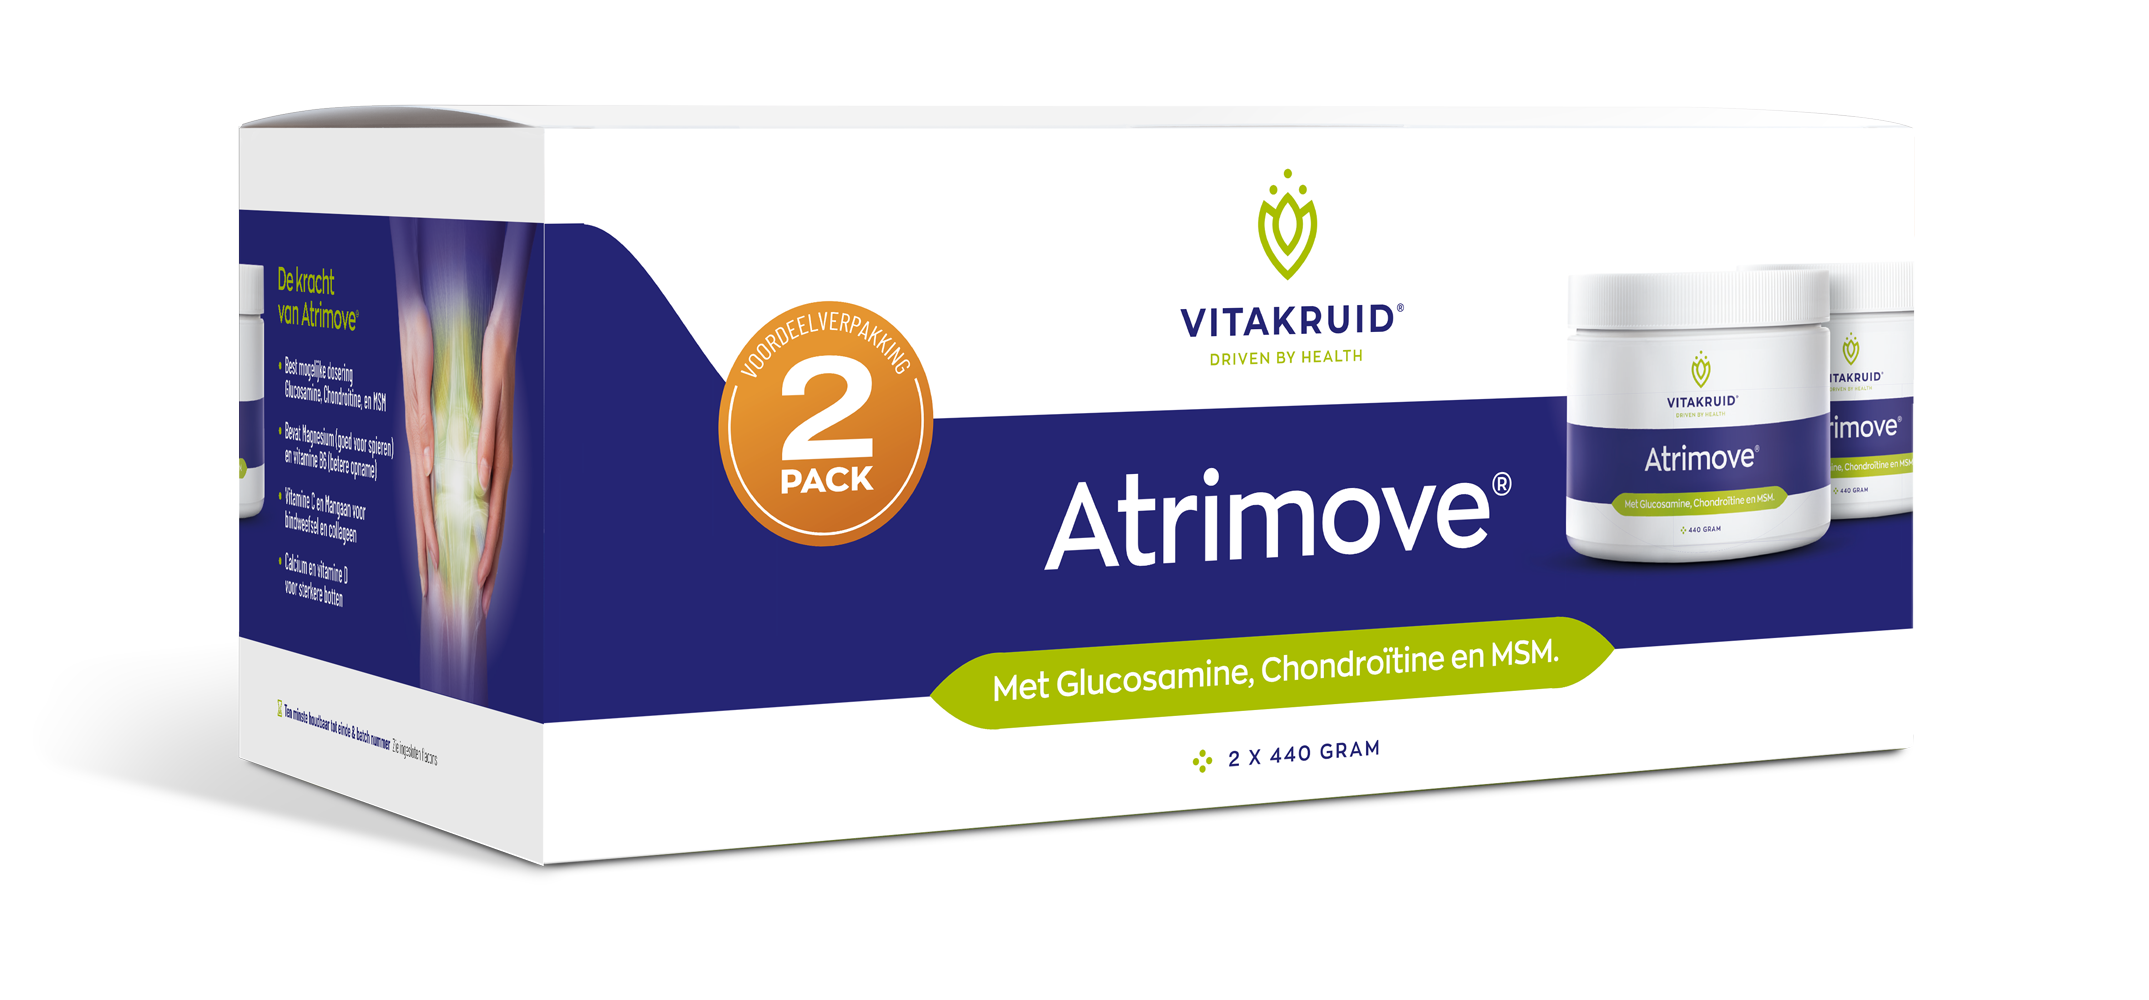 Atrimove Granulaat 2 pack Vitakruid